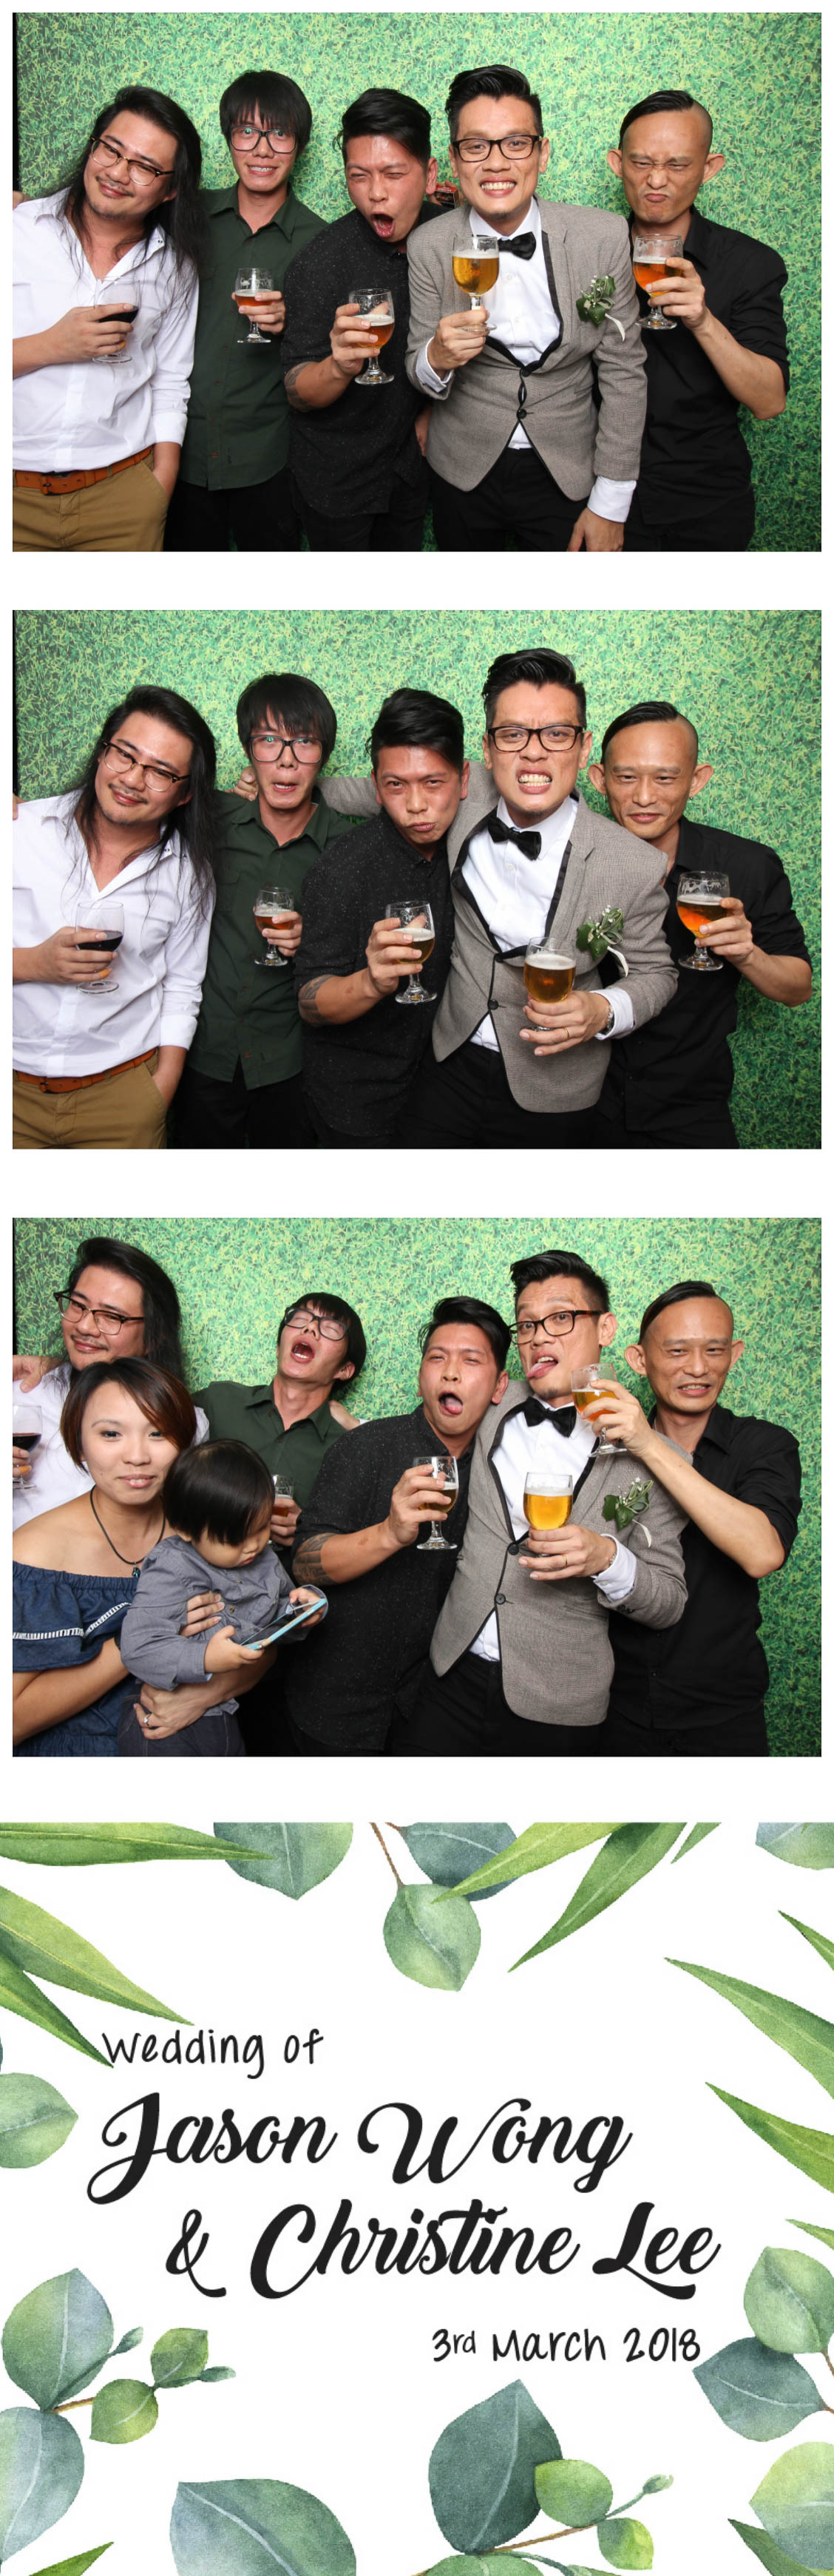 Photobooth 0302-58